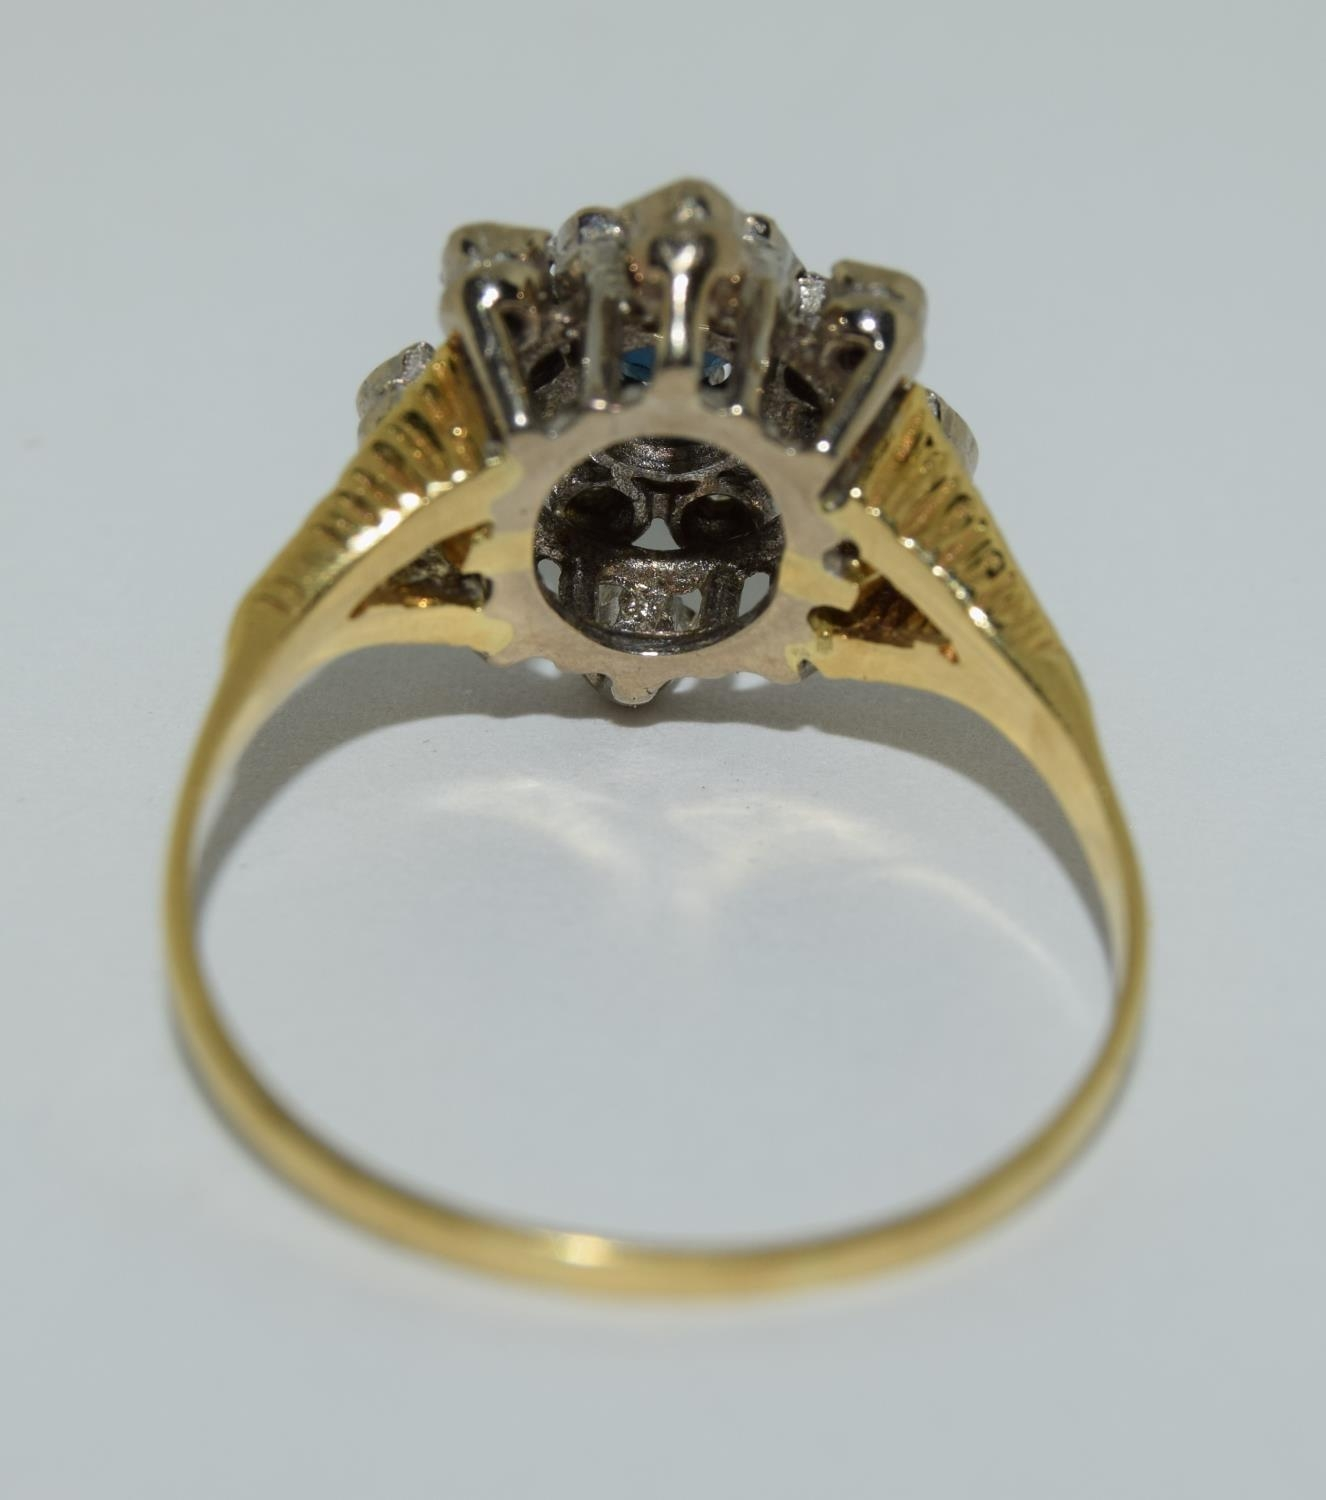 18ct gold diamond and sapphire ring - approx 0.80 dia. Size O. - Image 3 of 6